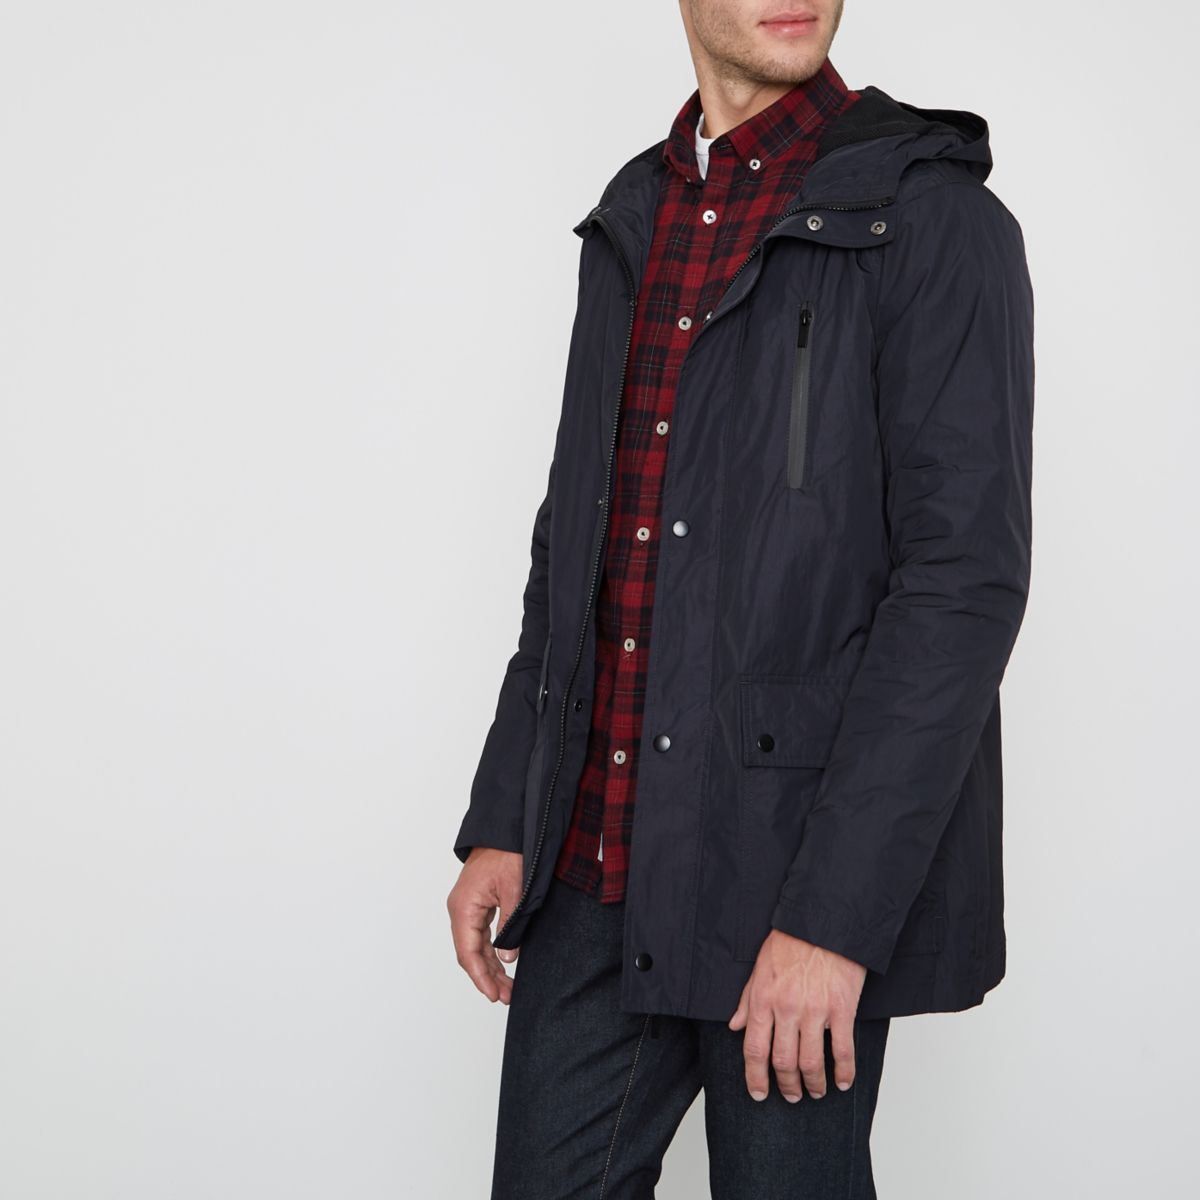 Navy lightweight hooded jacket